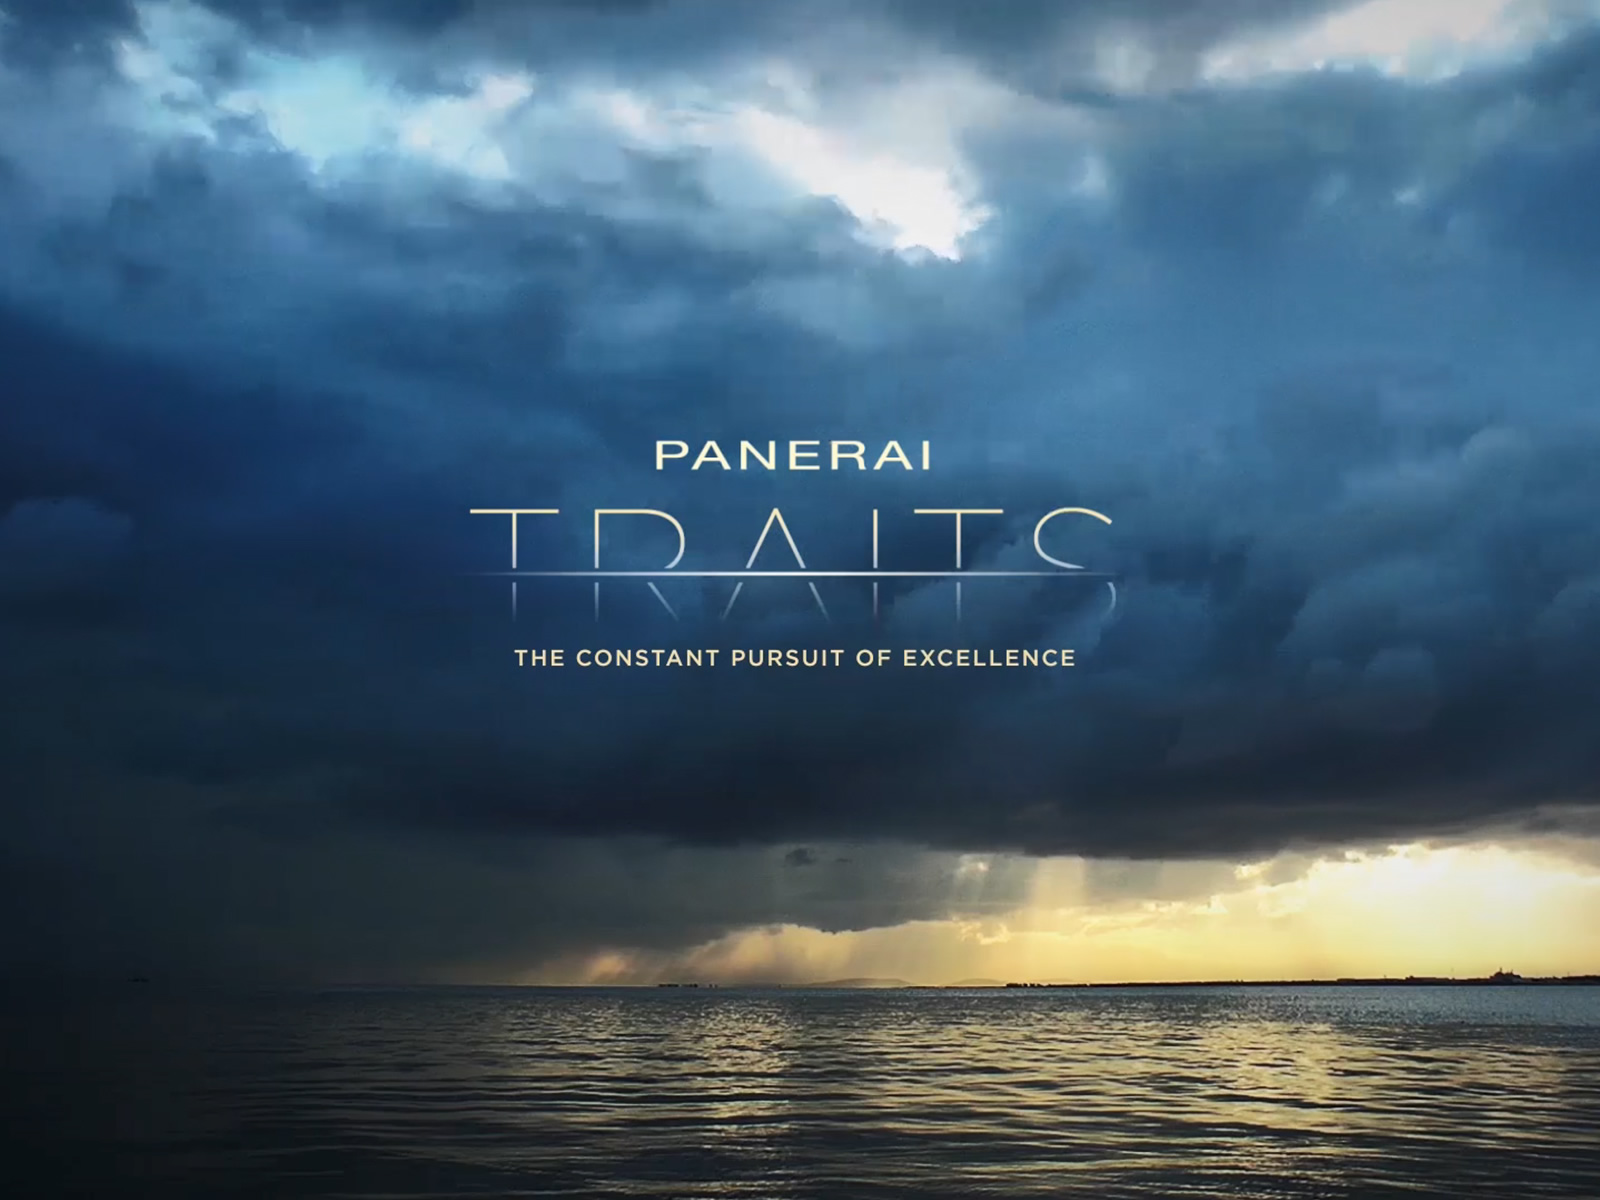 panerai-traits-2-.jpg